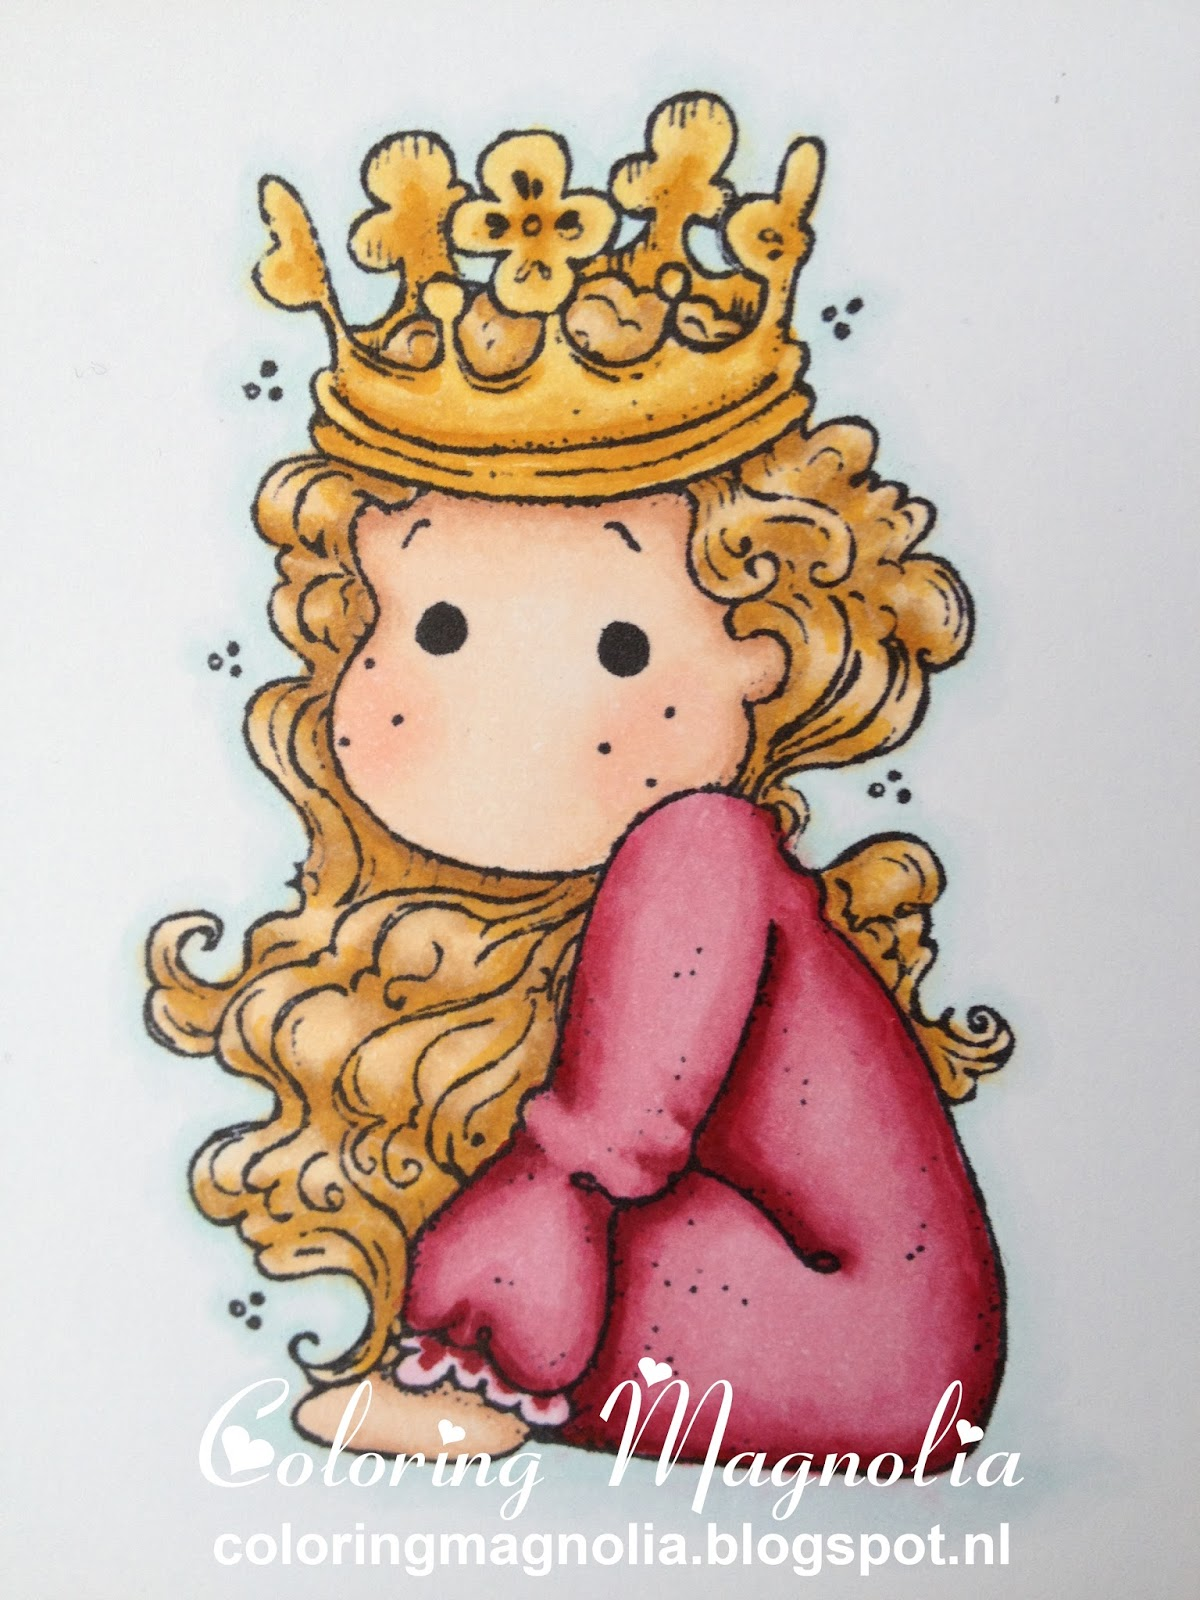 Coloring Magnolia Stamp 2013 Once Upon A Time - Little Cute Tilda